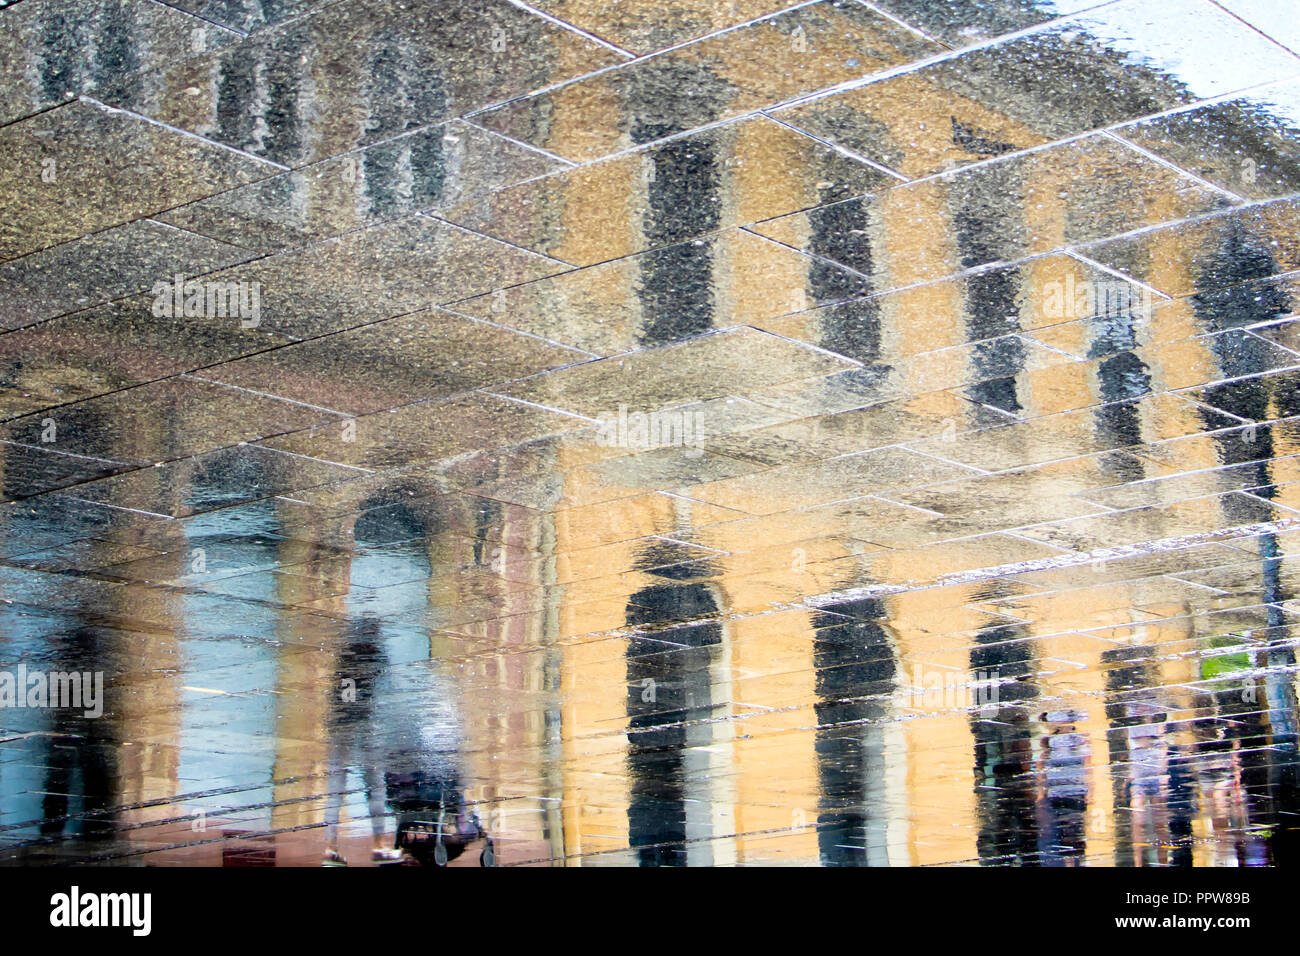 Blurry reflection shadow silhouette in a puddle of people walking on rainy city street Stock Photo